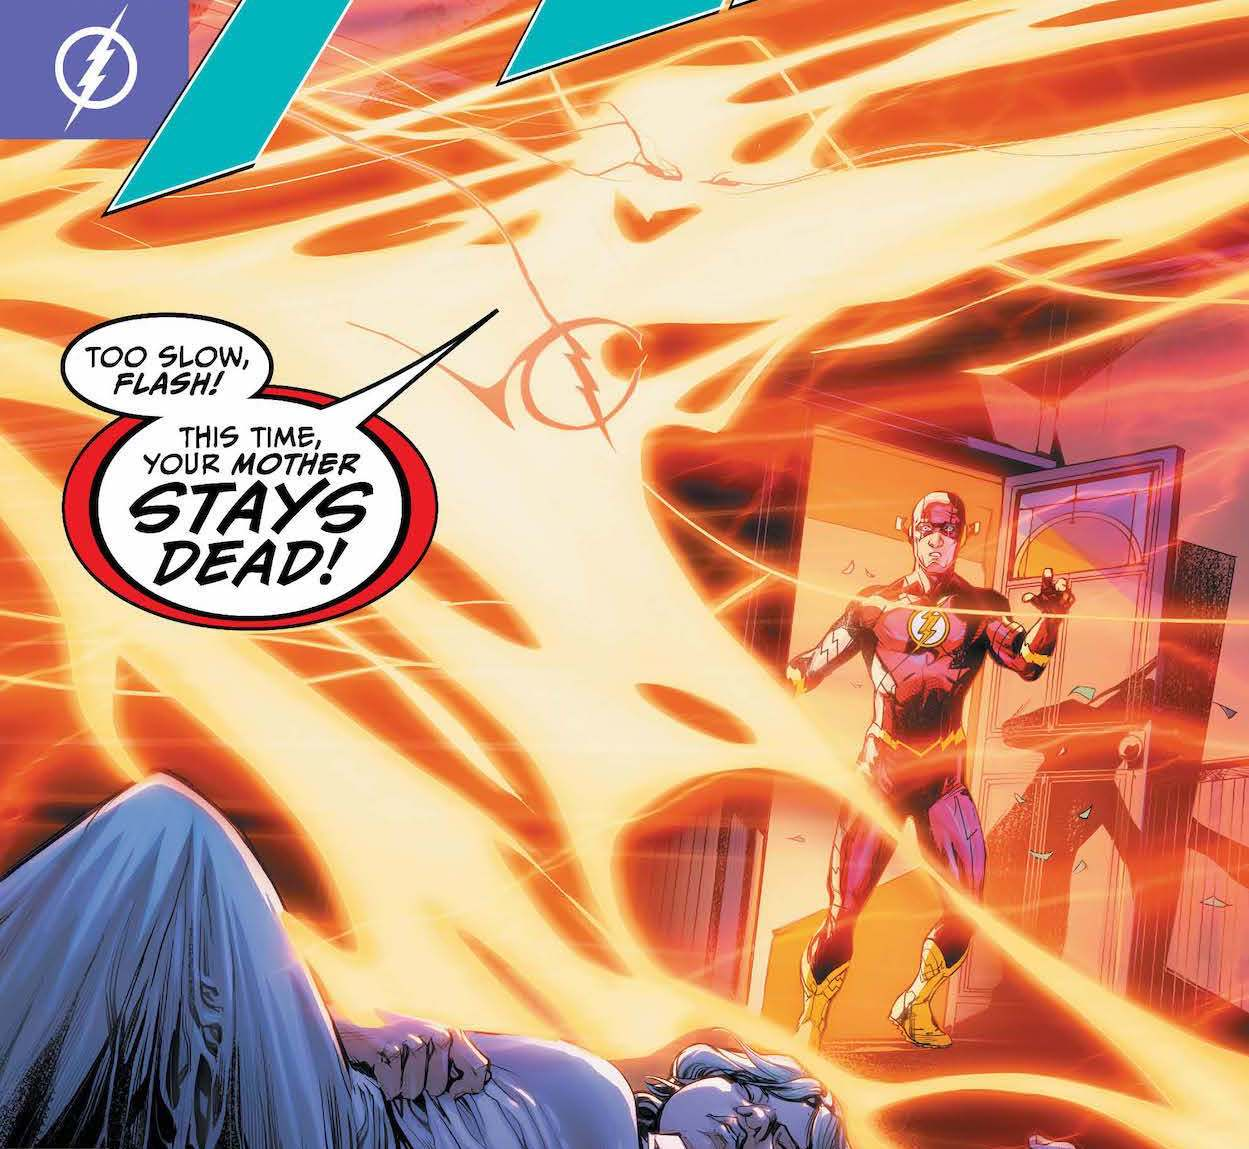 'The Flash' #753 review: Awesome action and deep emotion